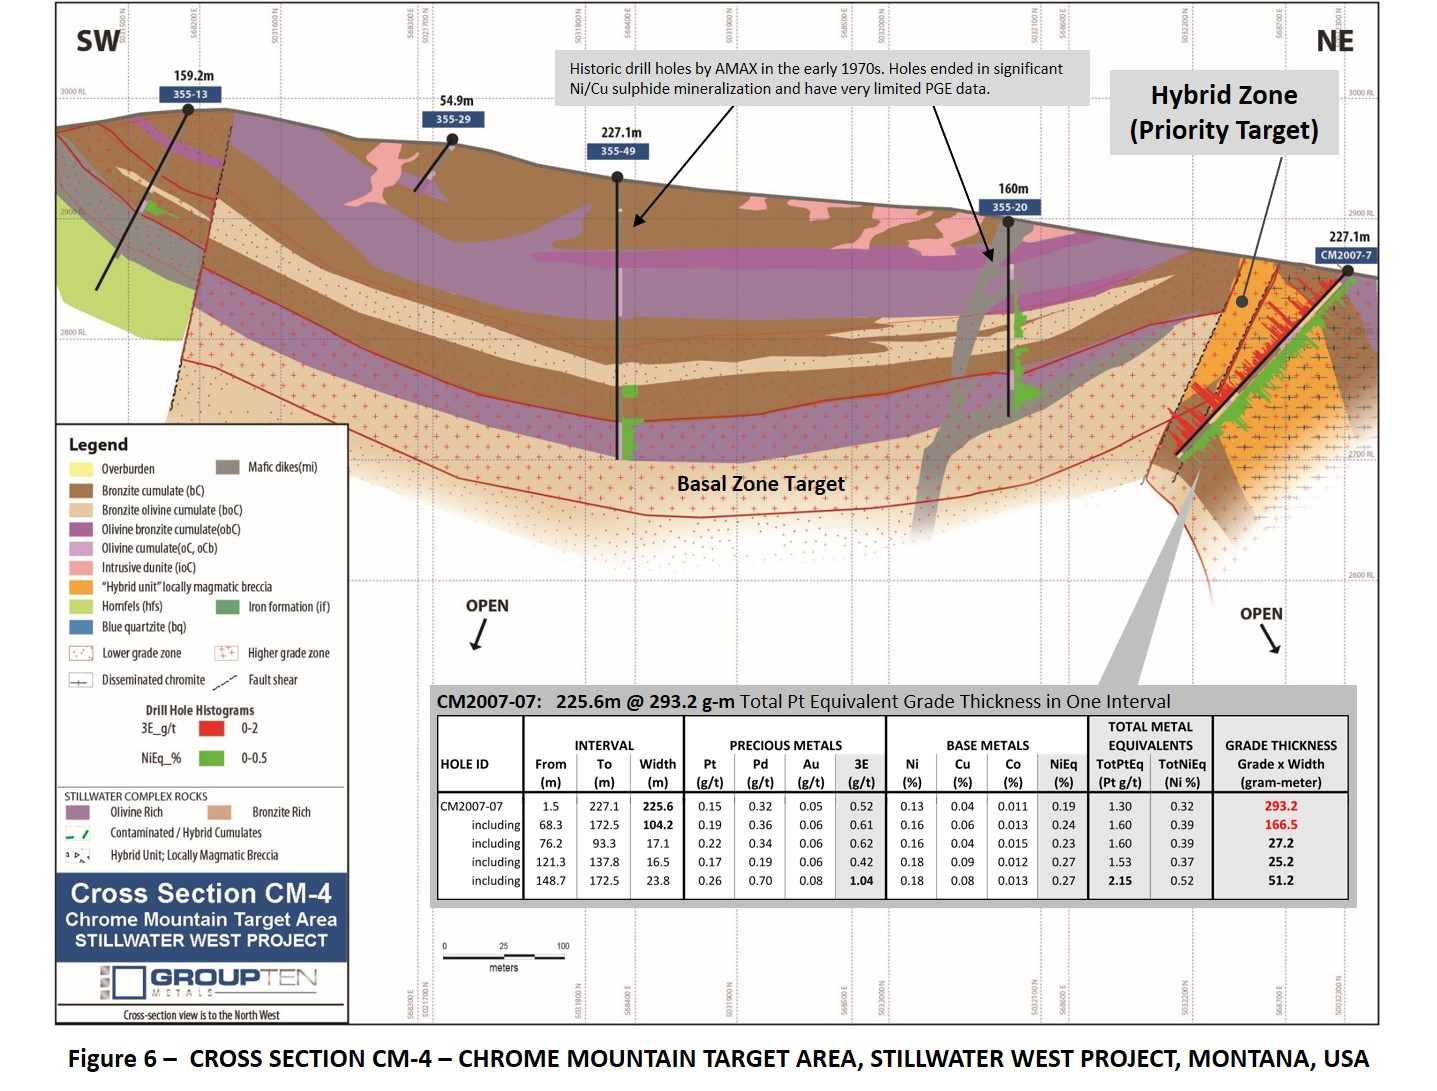 Figure 6 – Cross Section CM-4 – Chrome Mountain Target Area, Stillwater West Project, Montana, USA